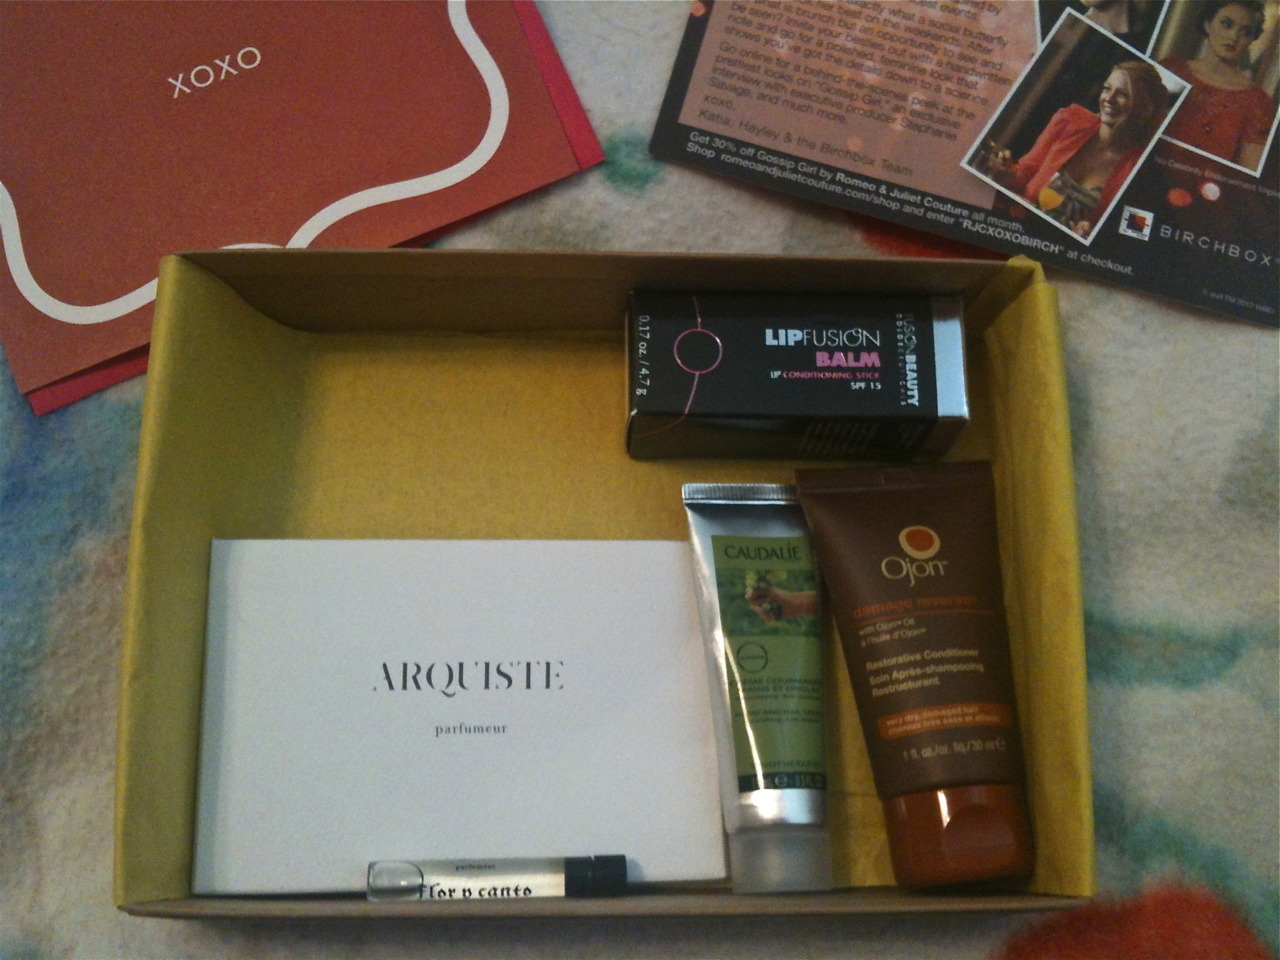 Yay for May! Gossip Girl Birchbox is here. There were 4 different themes related to GG this month. Mine was Chic Sunday Brunch.  Here's what's inside: FusionBeauty LipFusion Balm: This is the full-size $22 Ojon damage reverse Restorative Conditioner: 30ml sample $2.94 Caudalie Hand and Nail Cream: 15ml sample $3.80 Arquiste Flor y Canto scent: 1.13ml sample $3.39 Gossip Girl xoxo Notecard w/Envelope Total value: $32.13 Not bad for only $10/month!